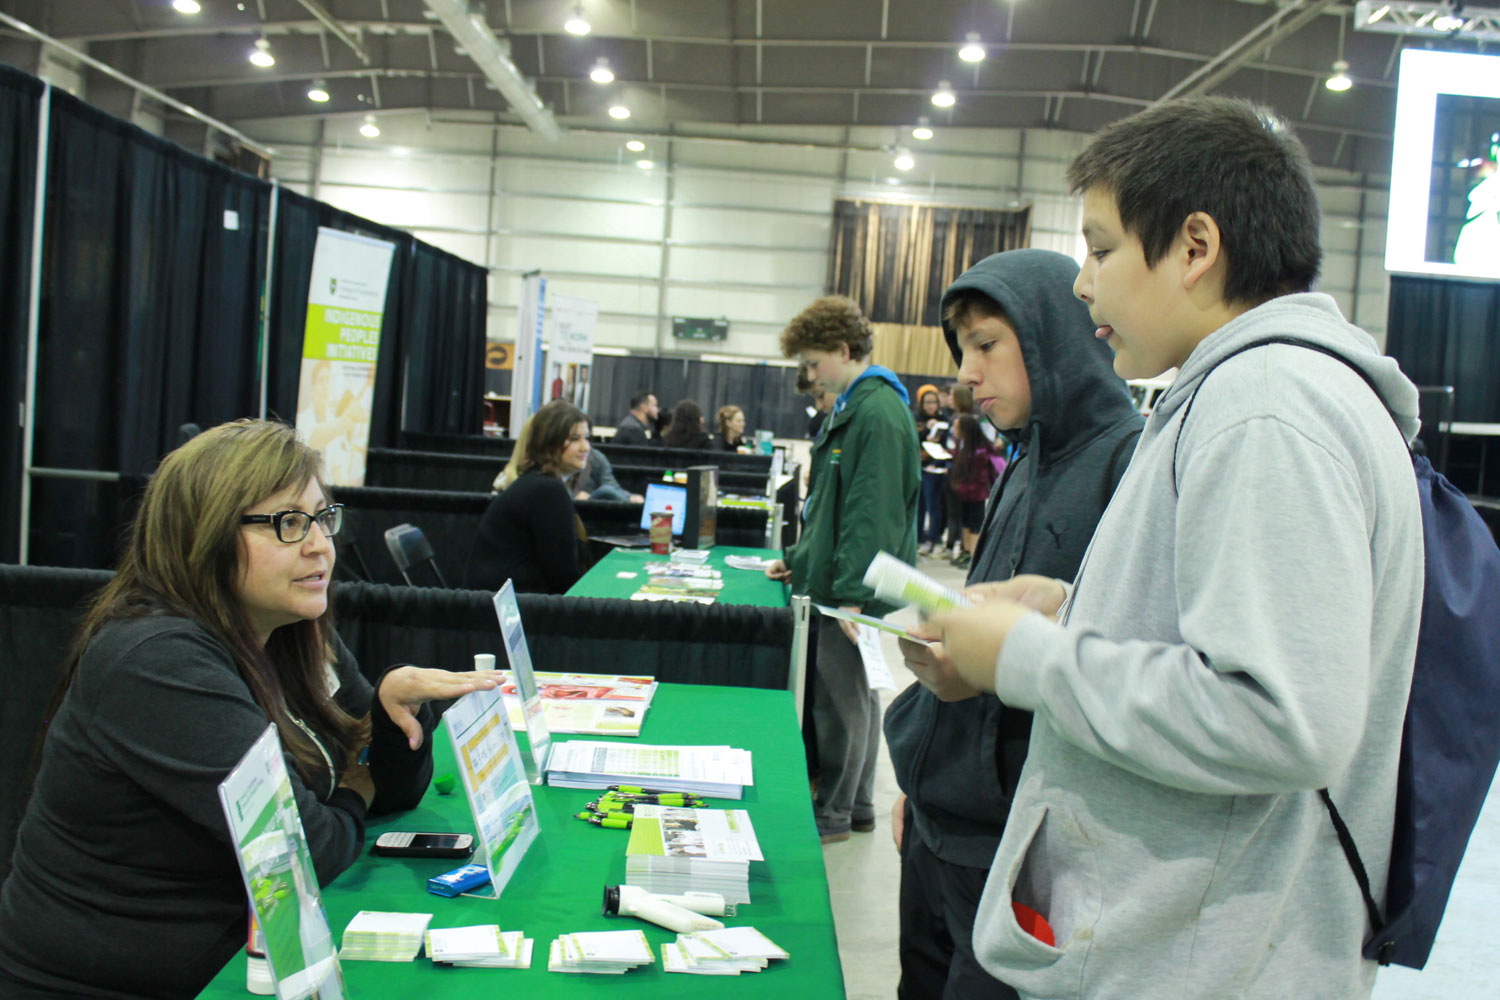 Students visiting the SaskTel booth.